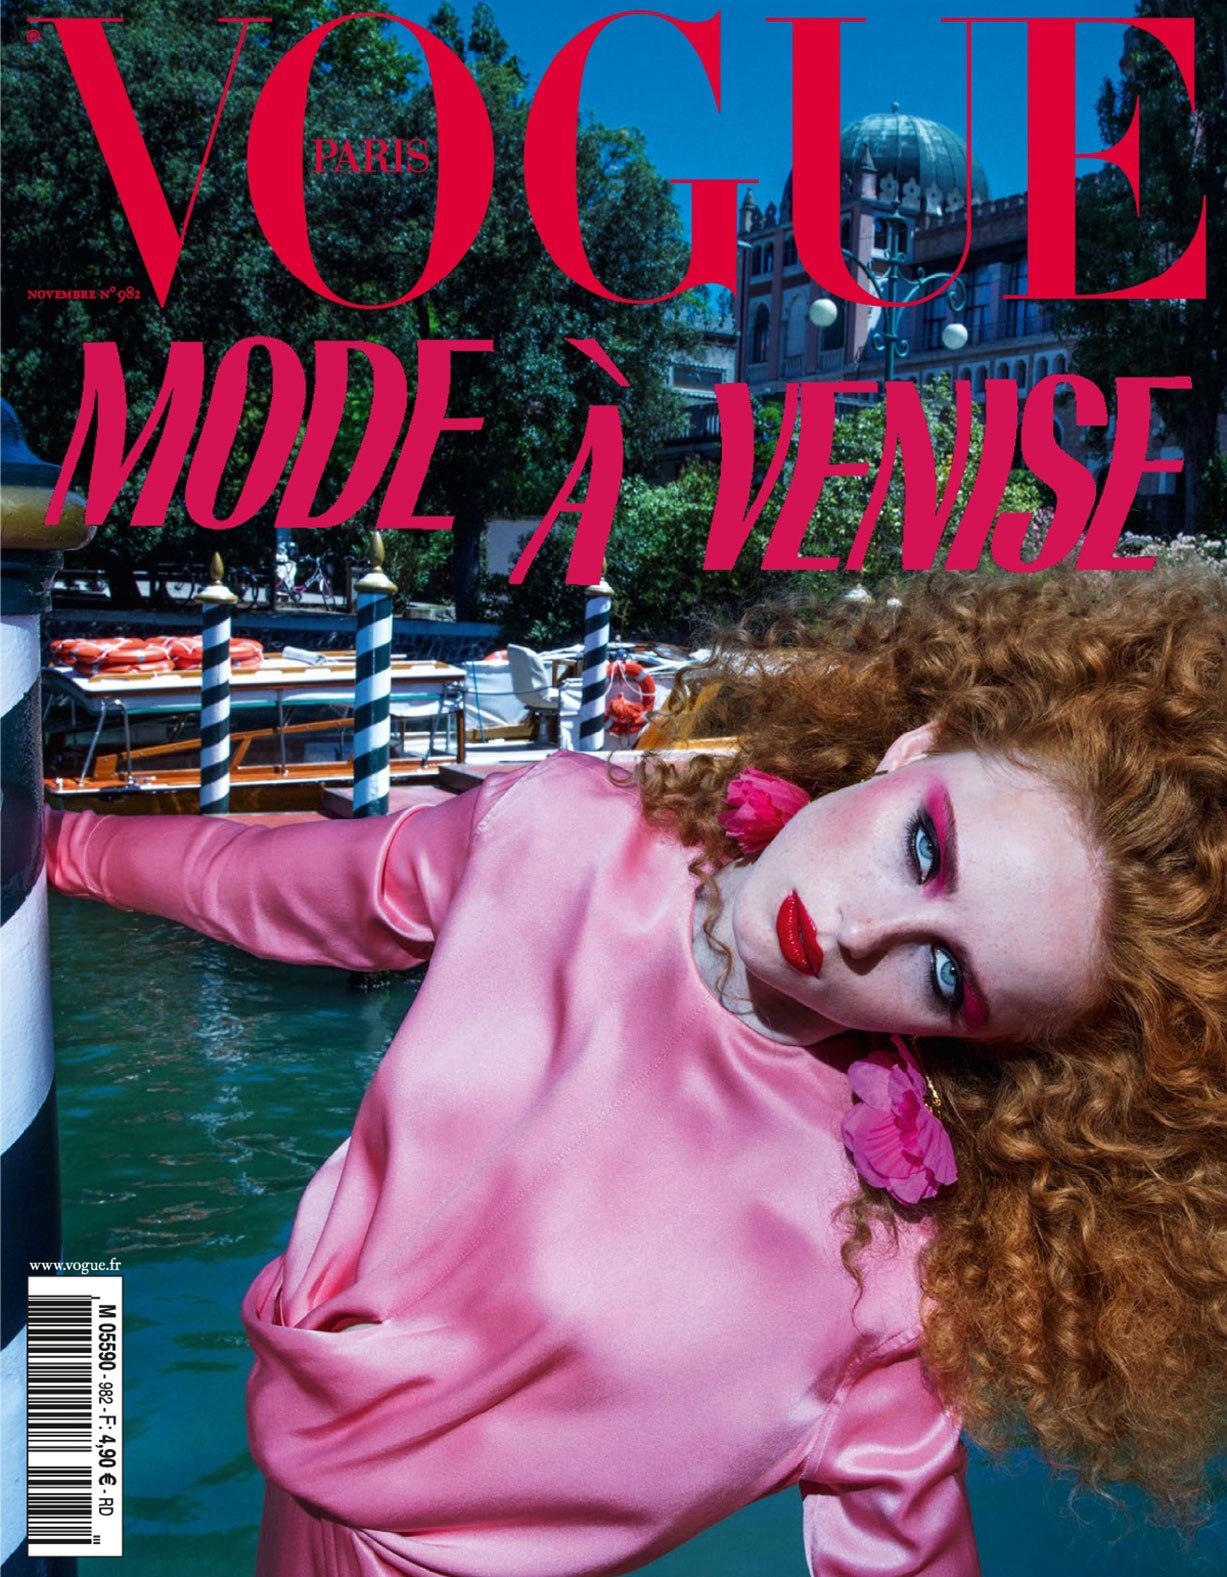 Венецианская фантазия Рианны ван Ромпай / Rianne van Rompaey by Inez van Lamsweerde and Vinoodh Matadin - Vogue Paris november 2017